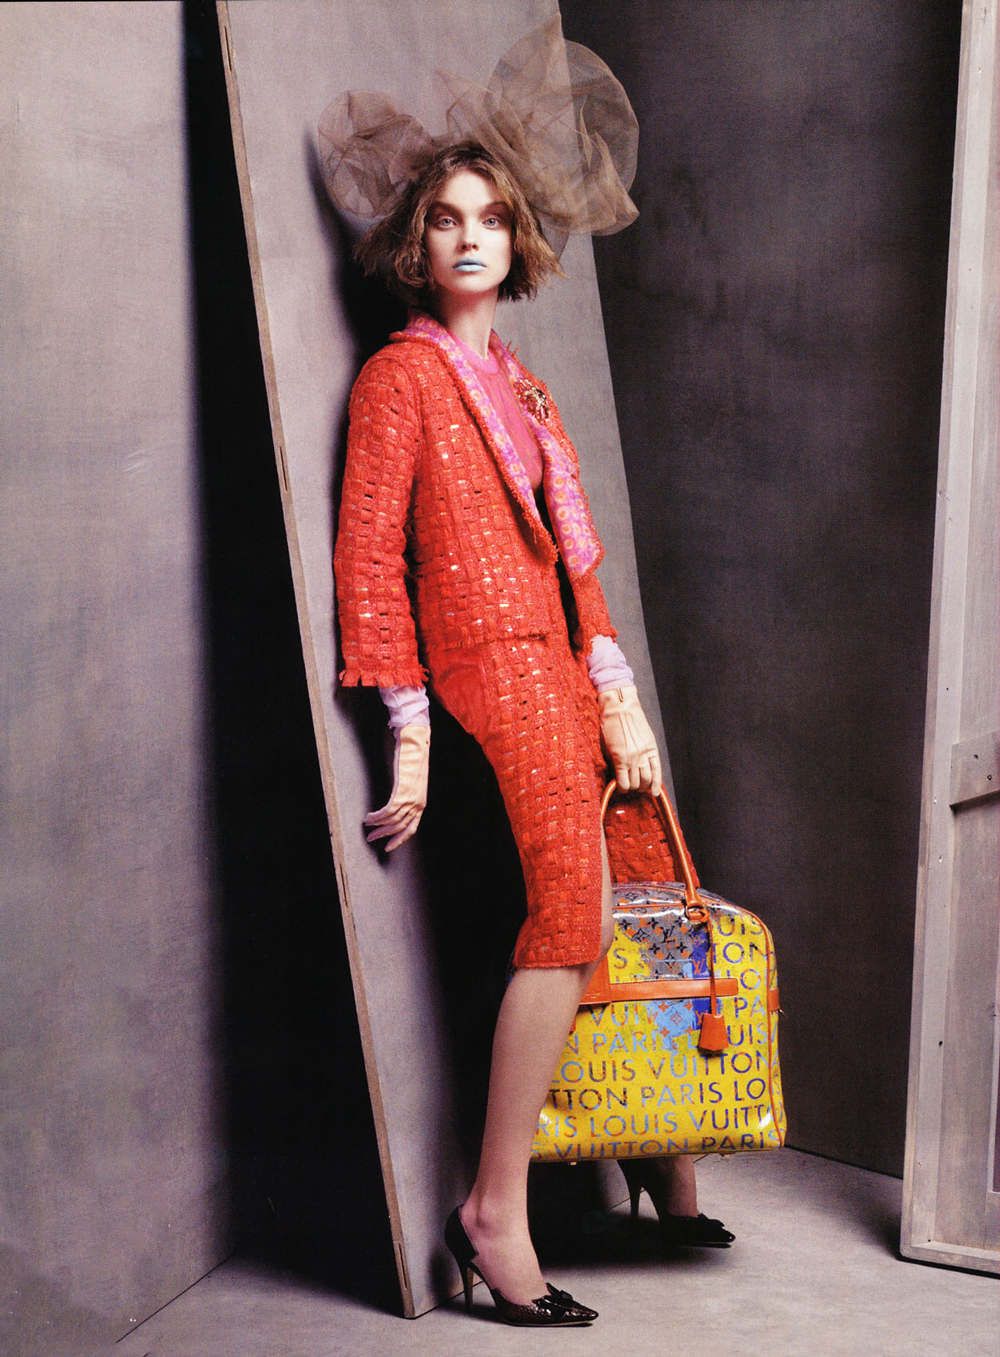 Peerless Natalia Vodianova wearing Louis Vuitton in Vogue US January 2008 (photography: Steven Meisel, styling: Grace Coddington) via www.fashionedbylove.co.uk